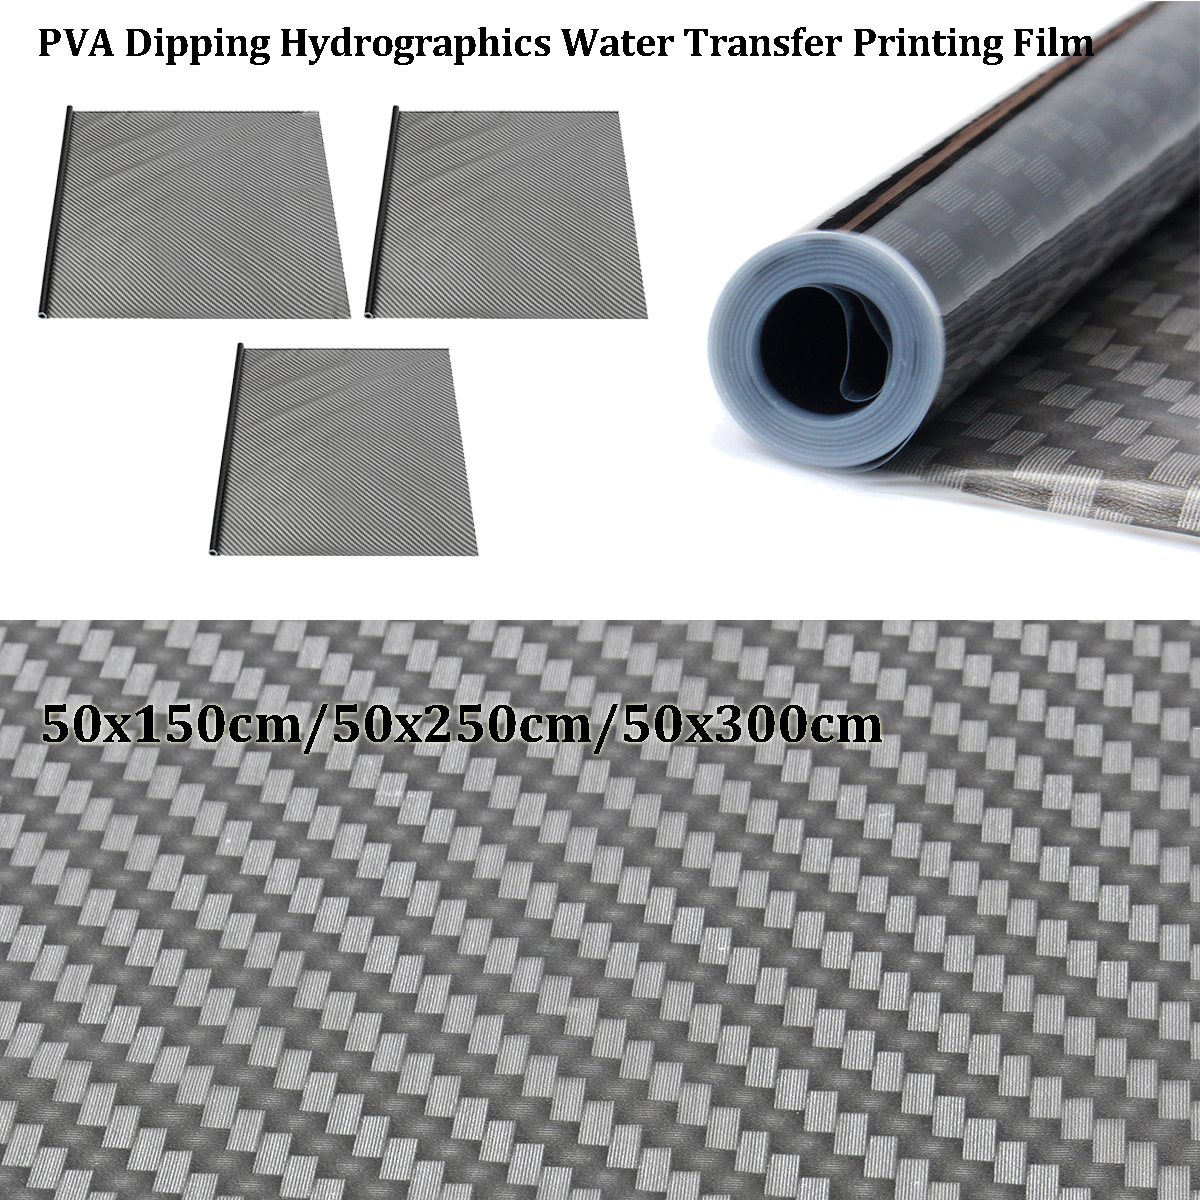 image regarding Printable Hydrographic Film called H2o Go Printing Movie Hydrographic Motion picture Hydro Dip Carbon Fiber